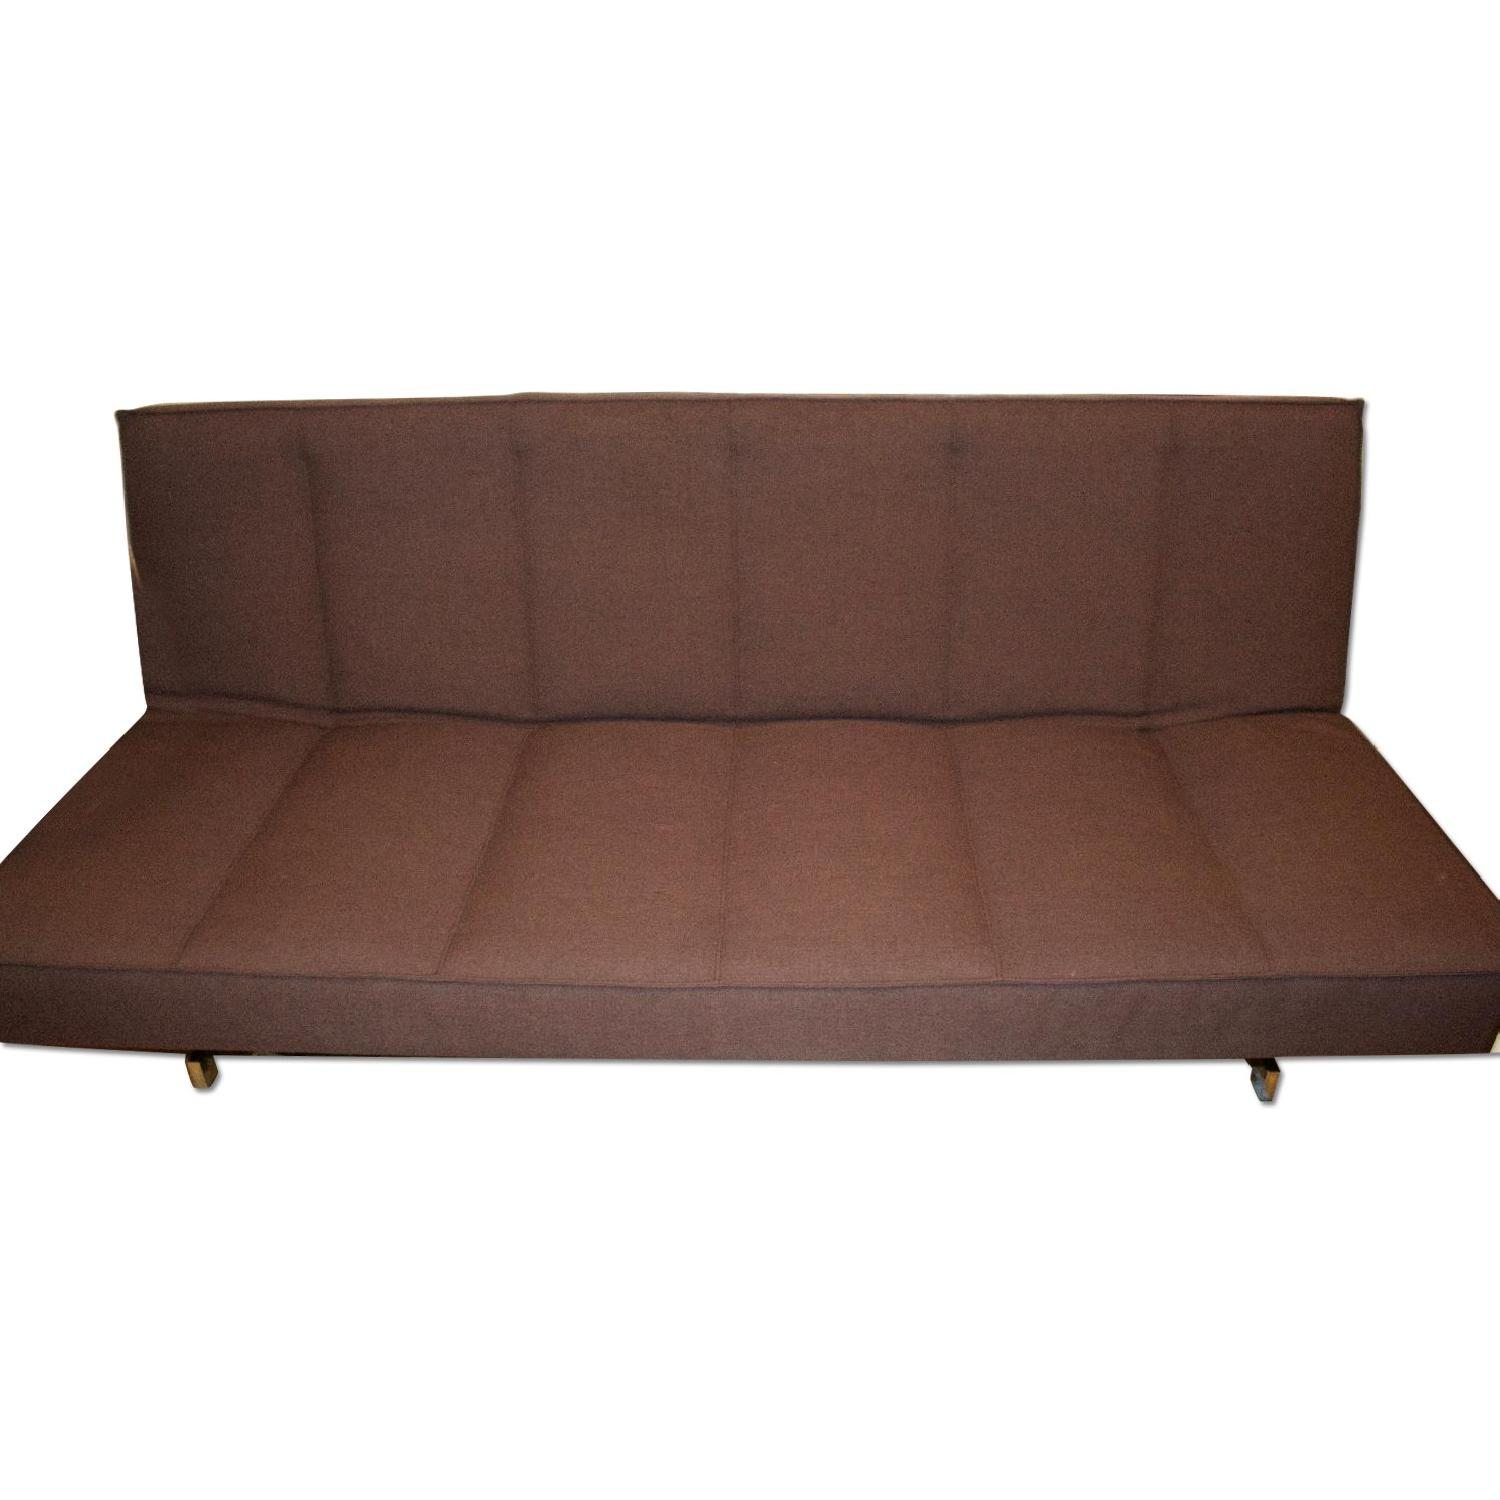 CB2 Flex Gravel Sleeper Sofa - image-0